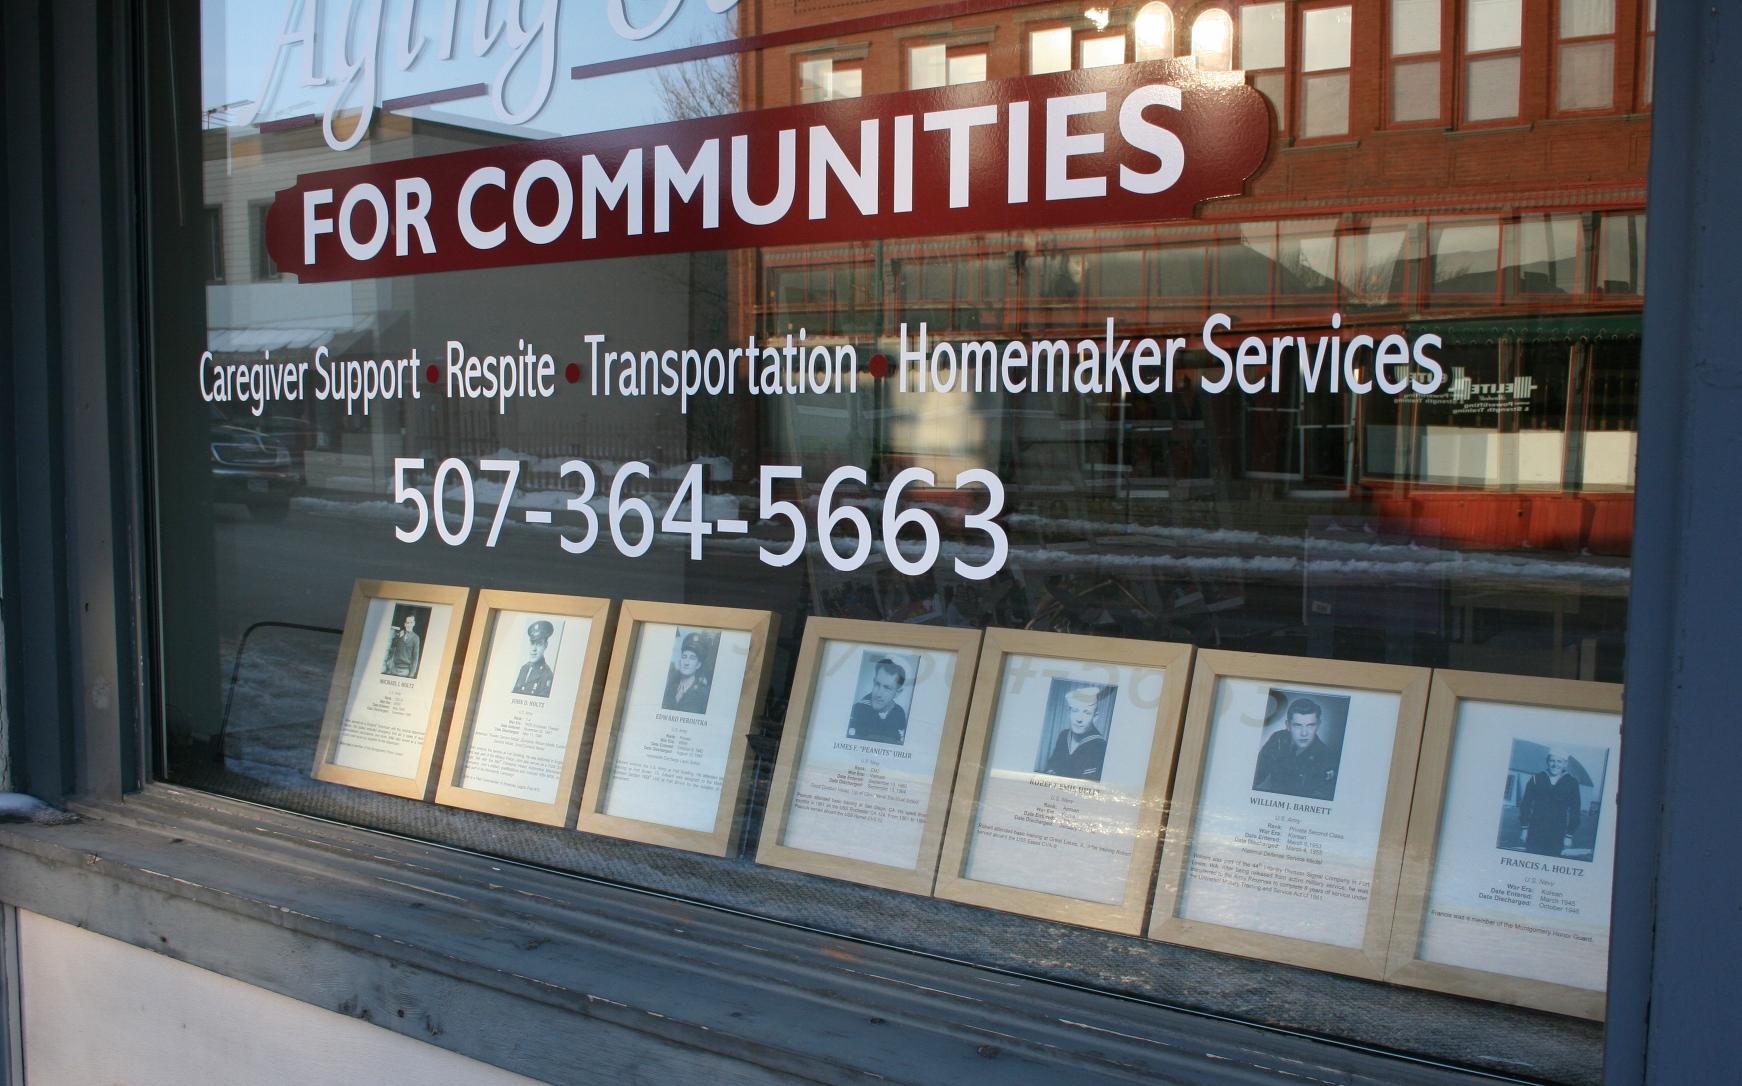 Veterans' photos and information in the window of Aging Services.